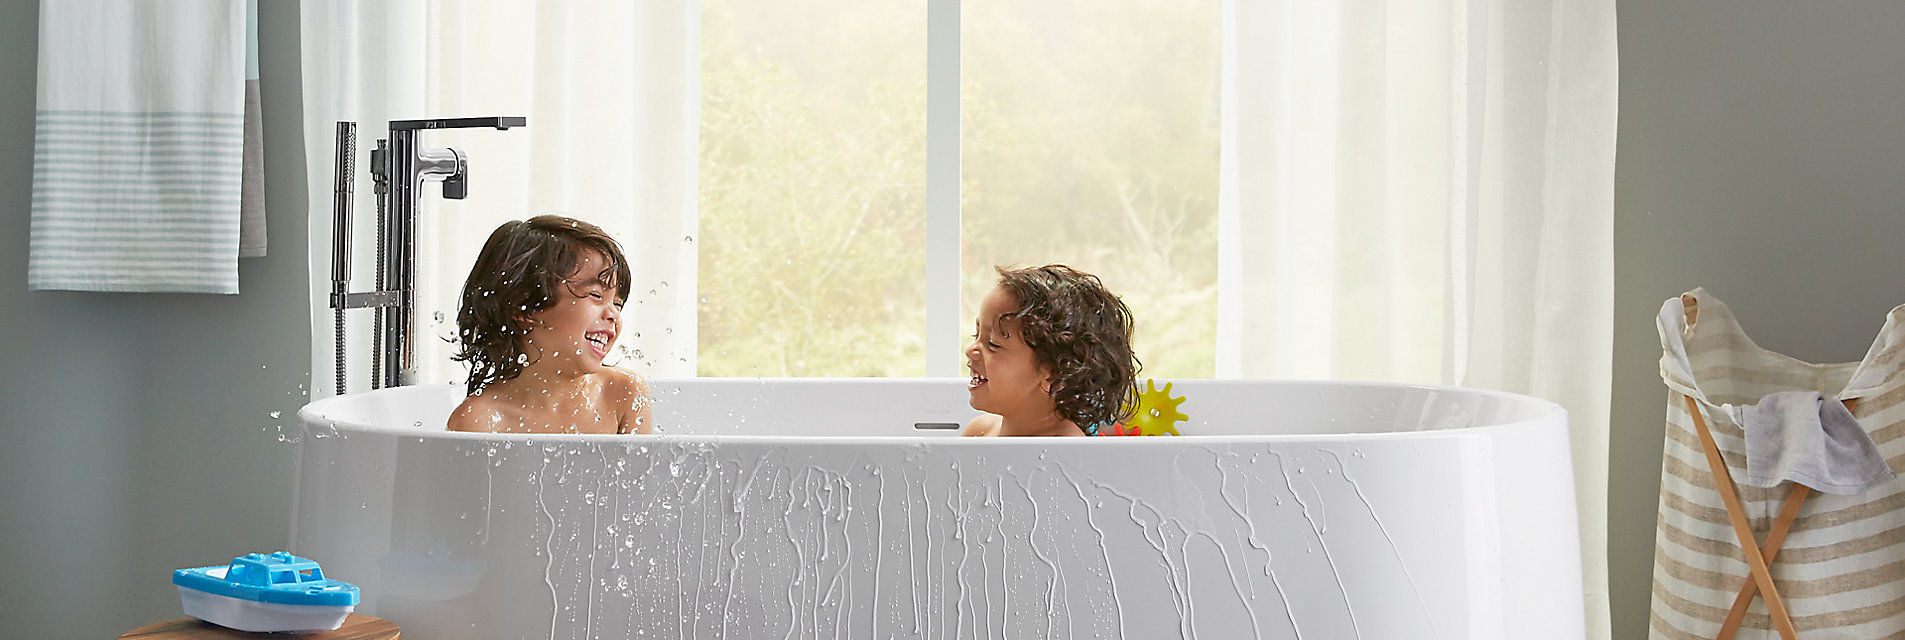 Two kids splash in a bath.